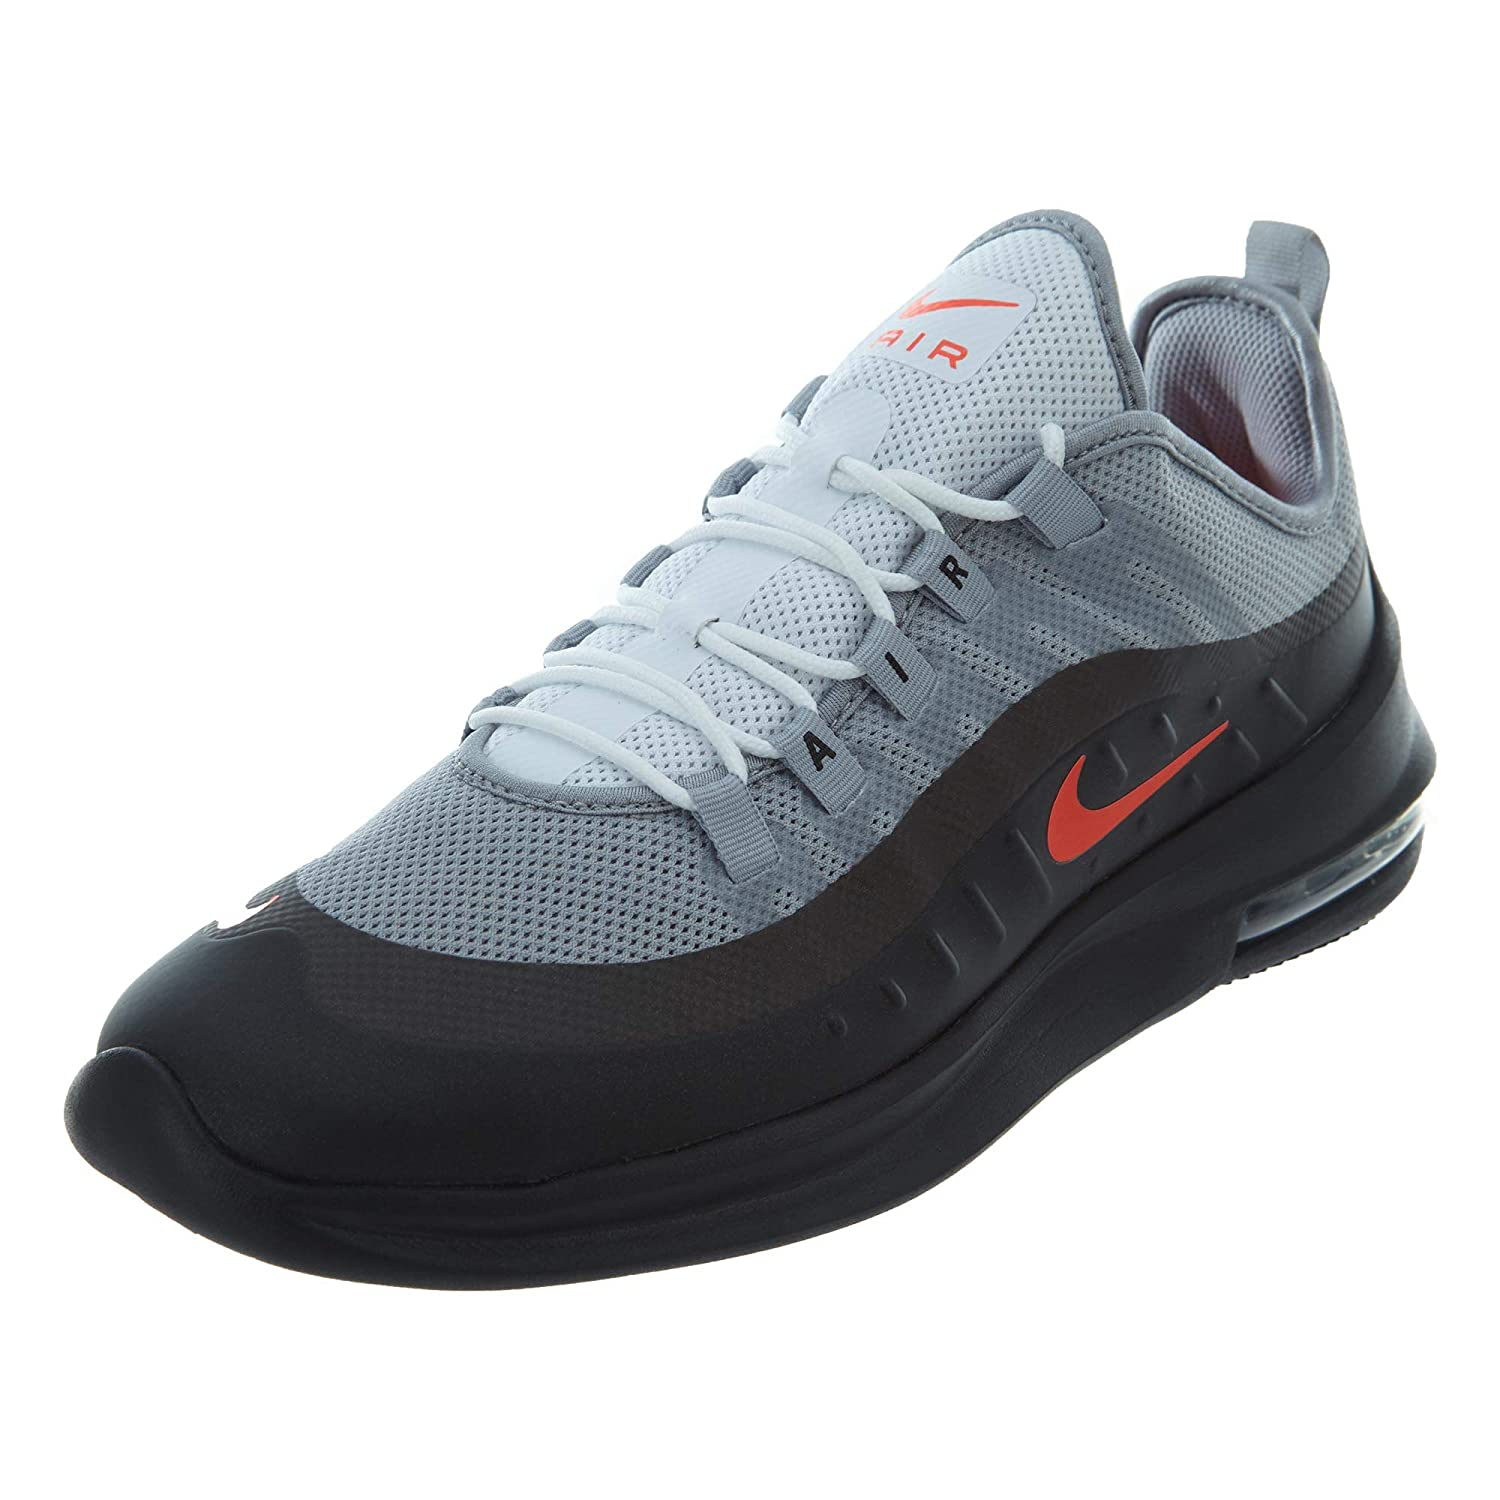 TALLA 43 EU. Nike Air MAX Axis – Wolf Grey/Total Crimson de Black de